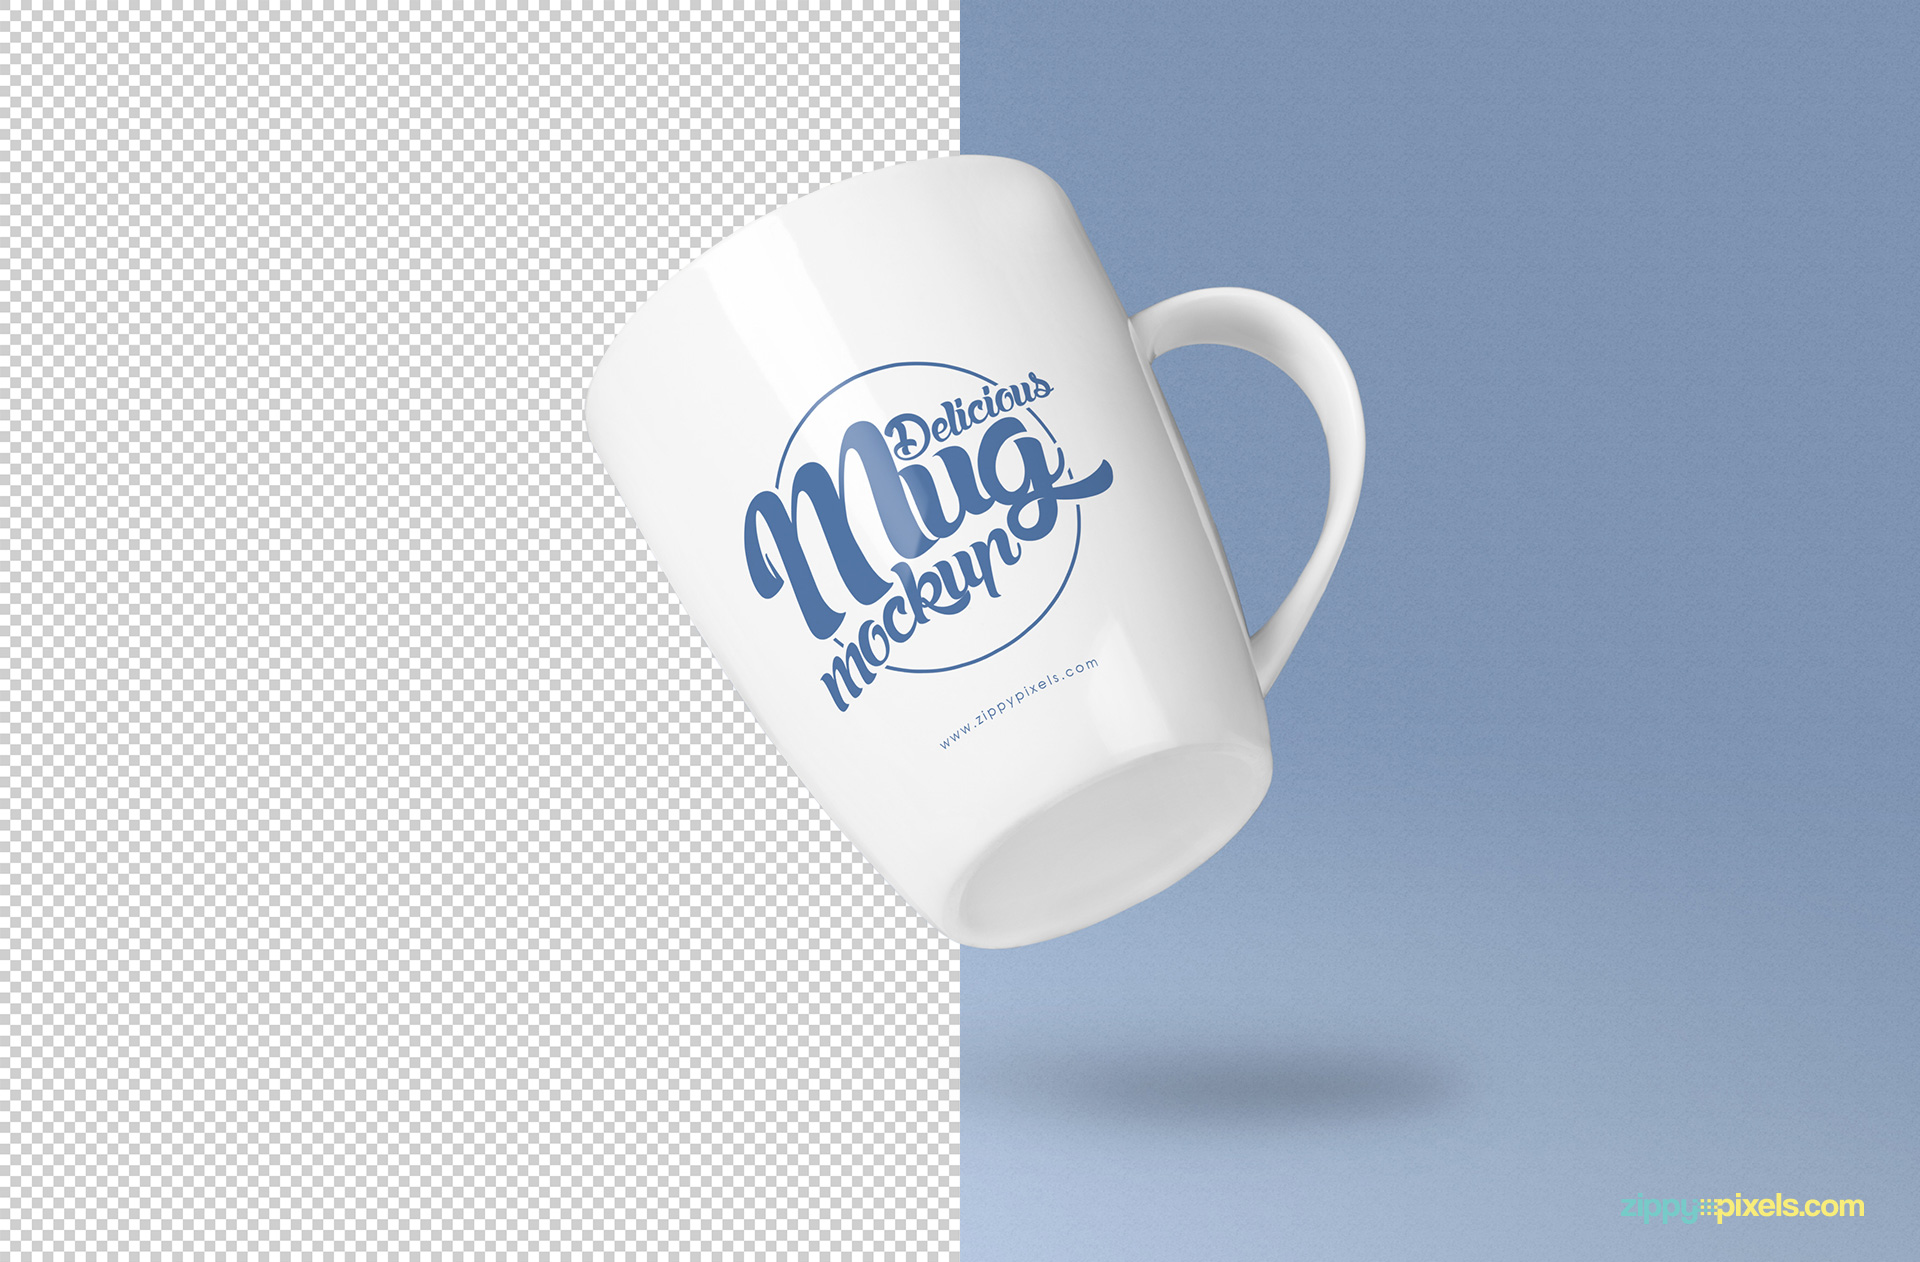 high quality coffee mug mockup psd